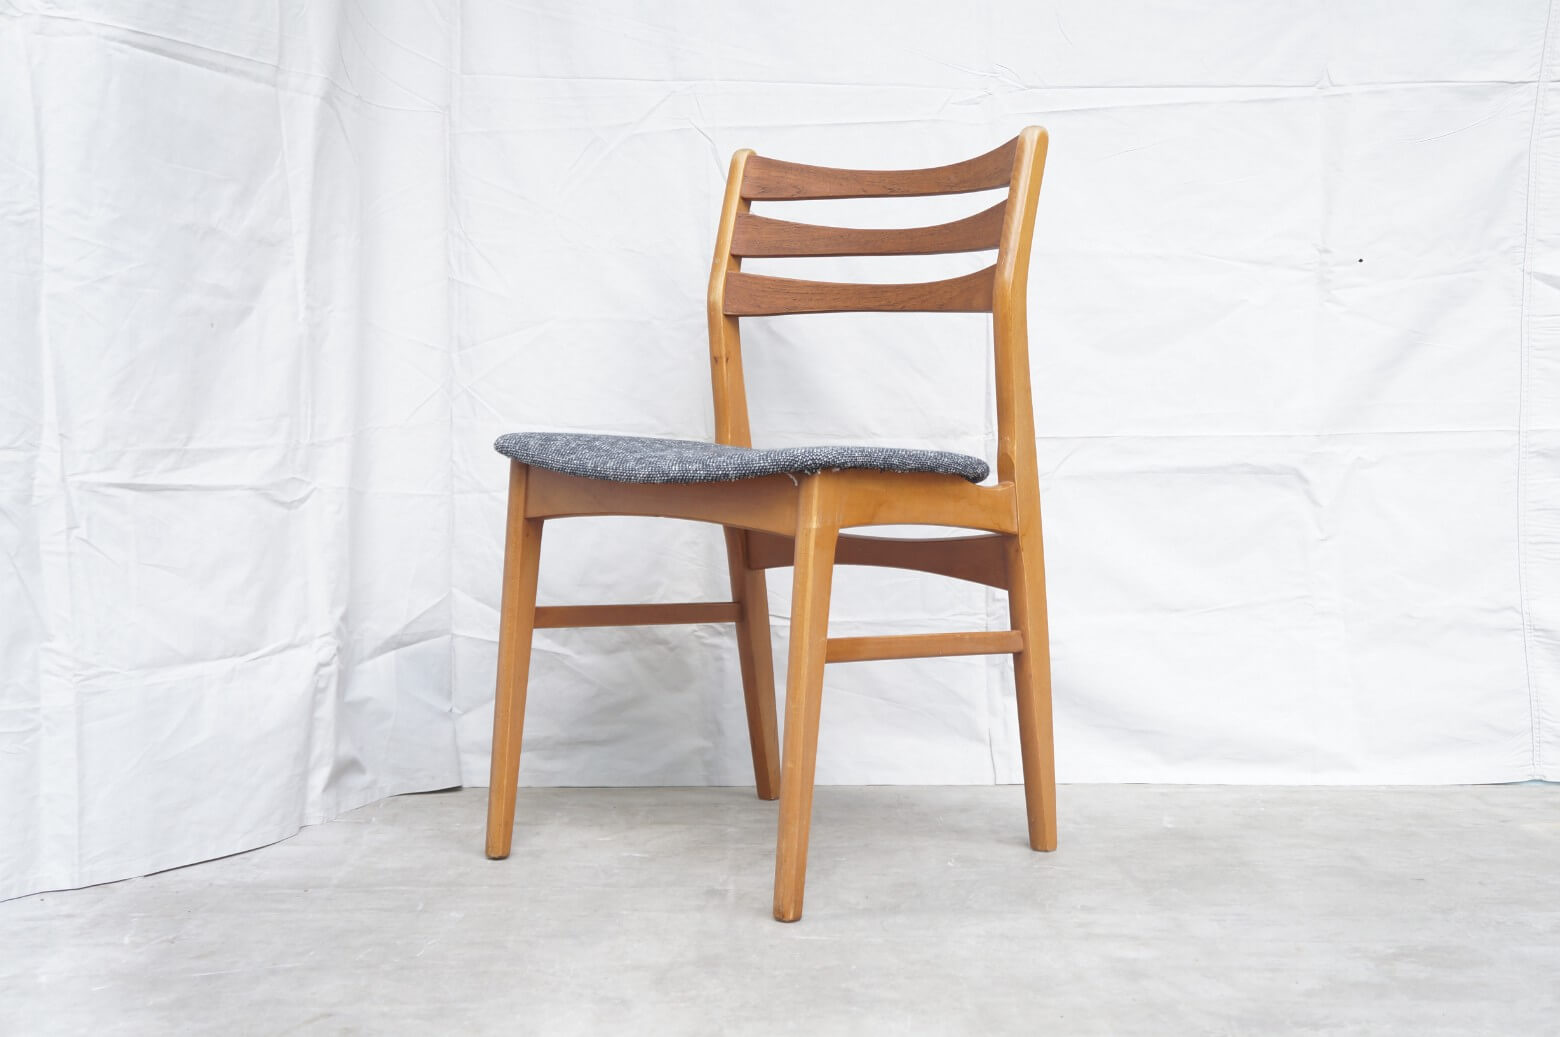 Faldsled & Mobelfabrik Dining Chair Made in Denmark REUPHOLSTERED / デンマーク製 ダイニングチェア 張替え済み